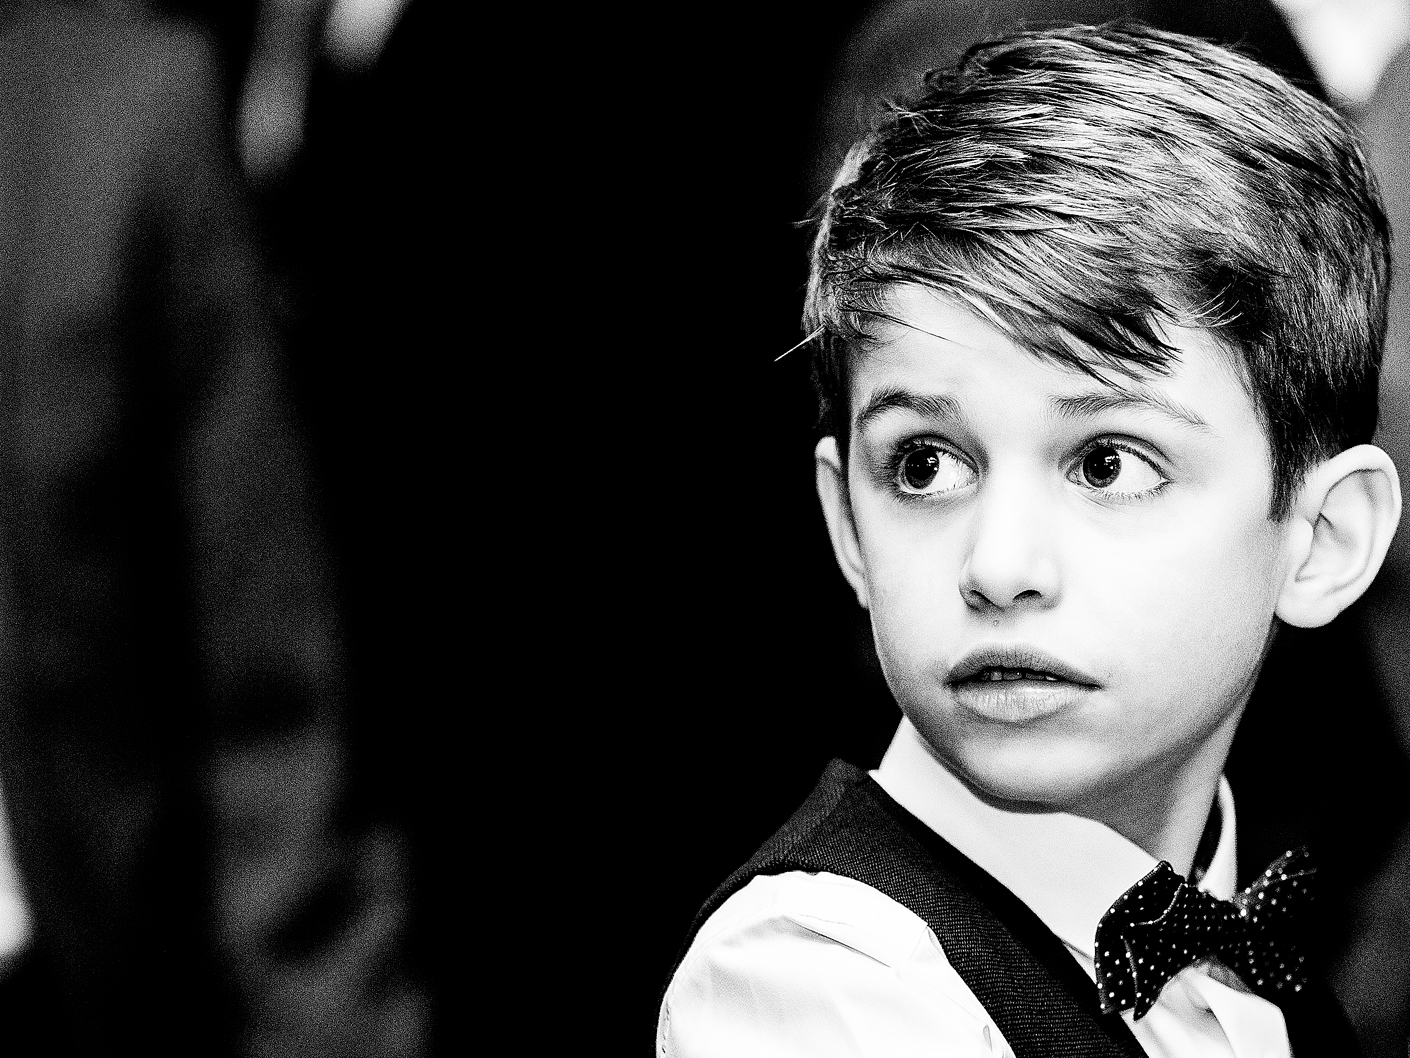 wedding-photography-of-the-page-boy-at-hope-street-hotel-liverpool